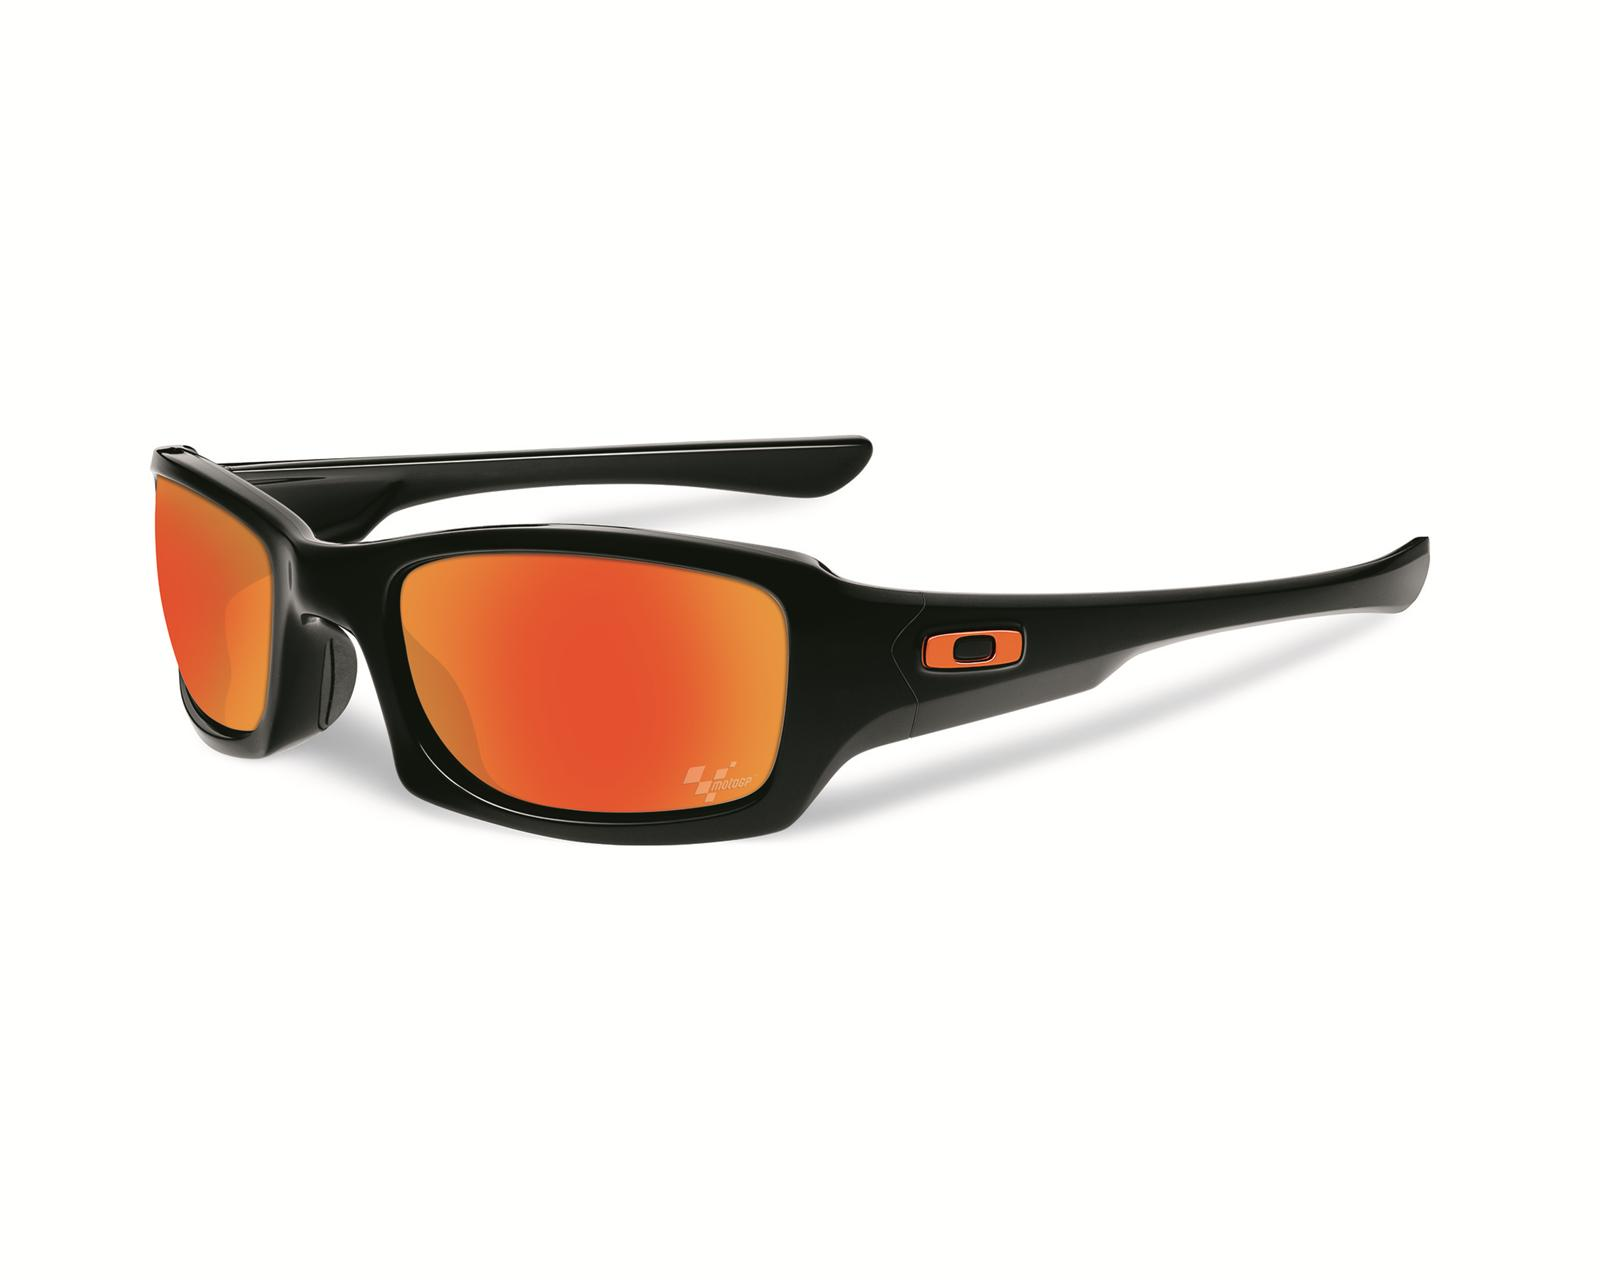 8ef24bd6df Oakley MotoGP Fives Squared Sunglasses OO9238-01 - Free Shipping on Orders  Over  99 at Summit Racing